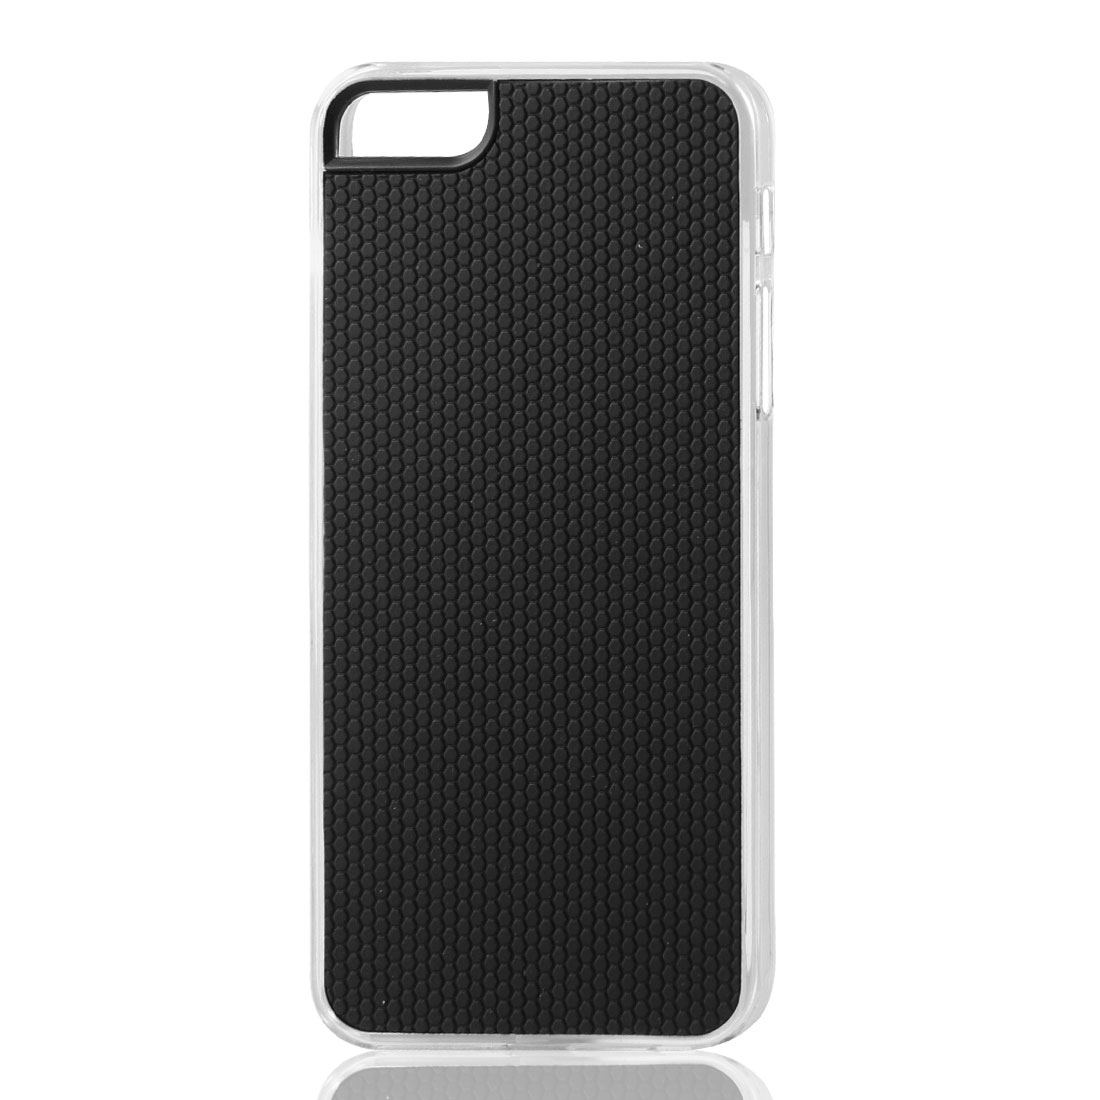 Black Hexagons Pattern Hard Back Case Cover Skin for iPhone 5 5G